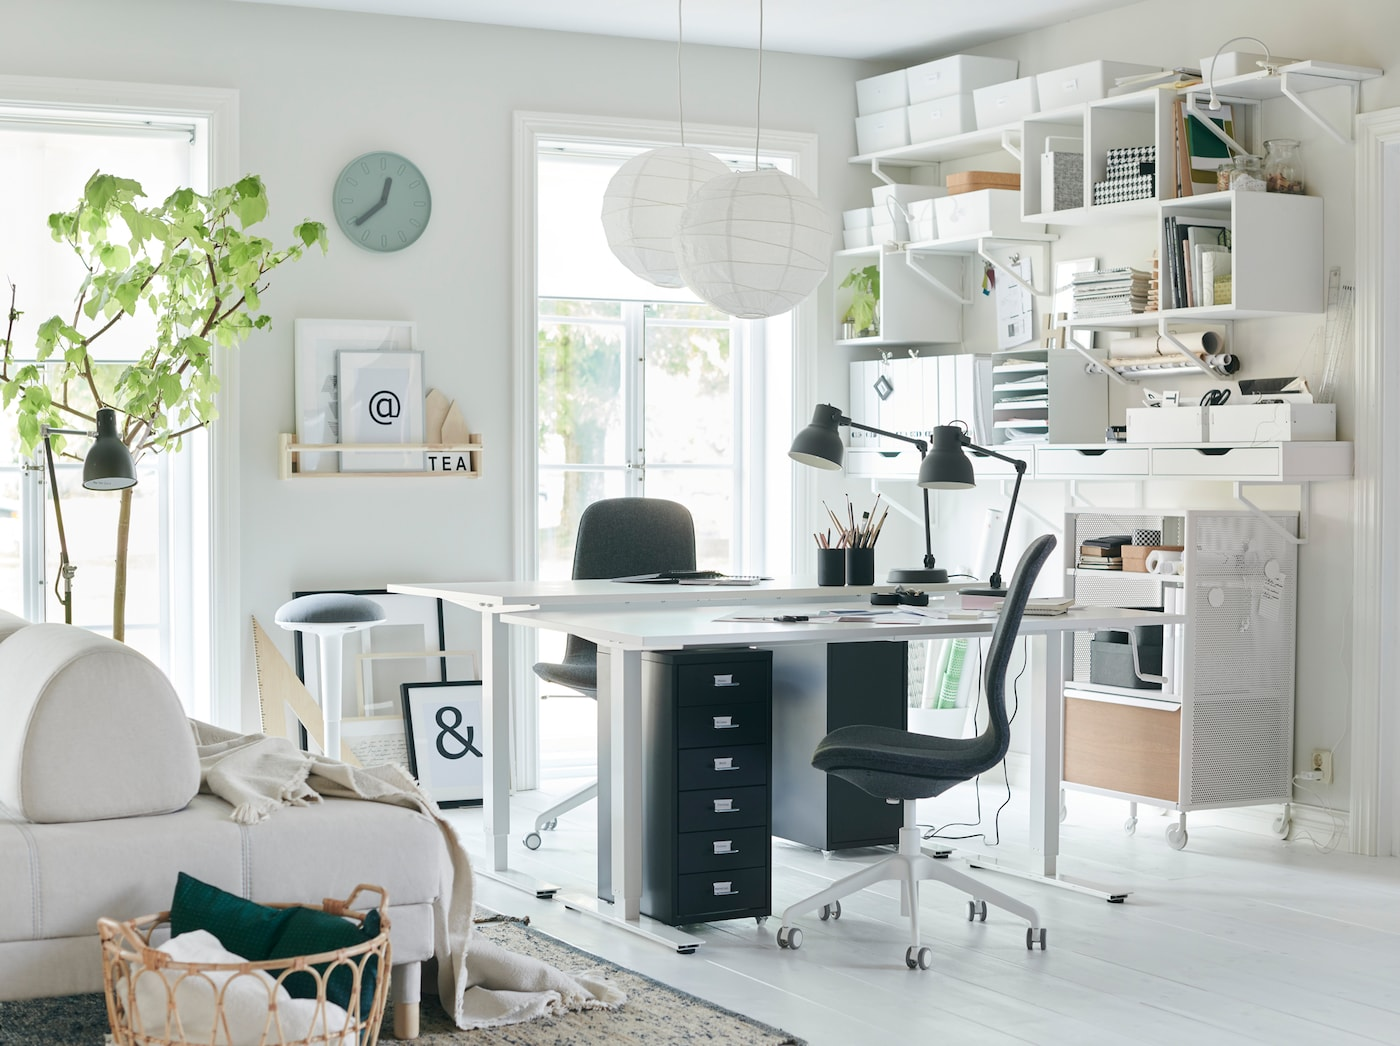 Home Office Design Gallery UAE - IKEA